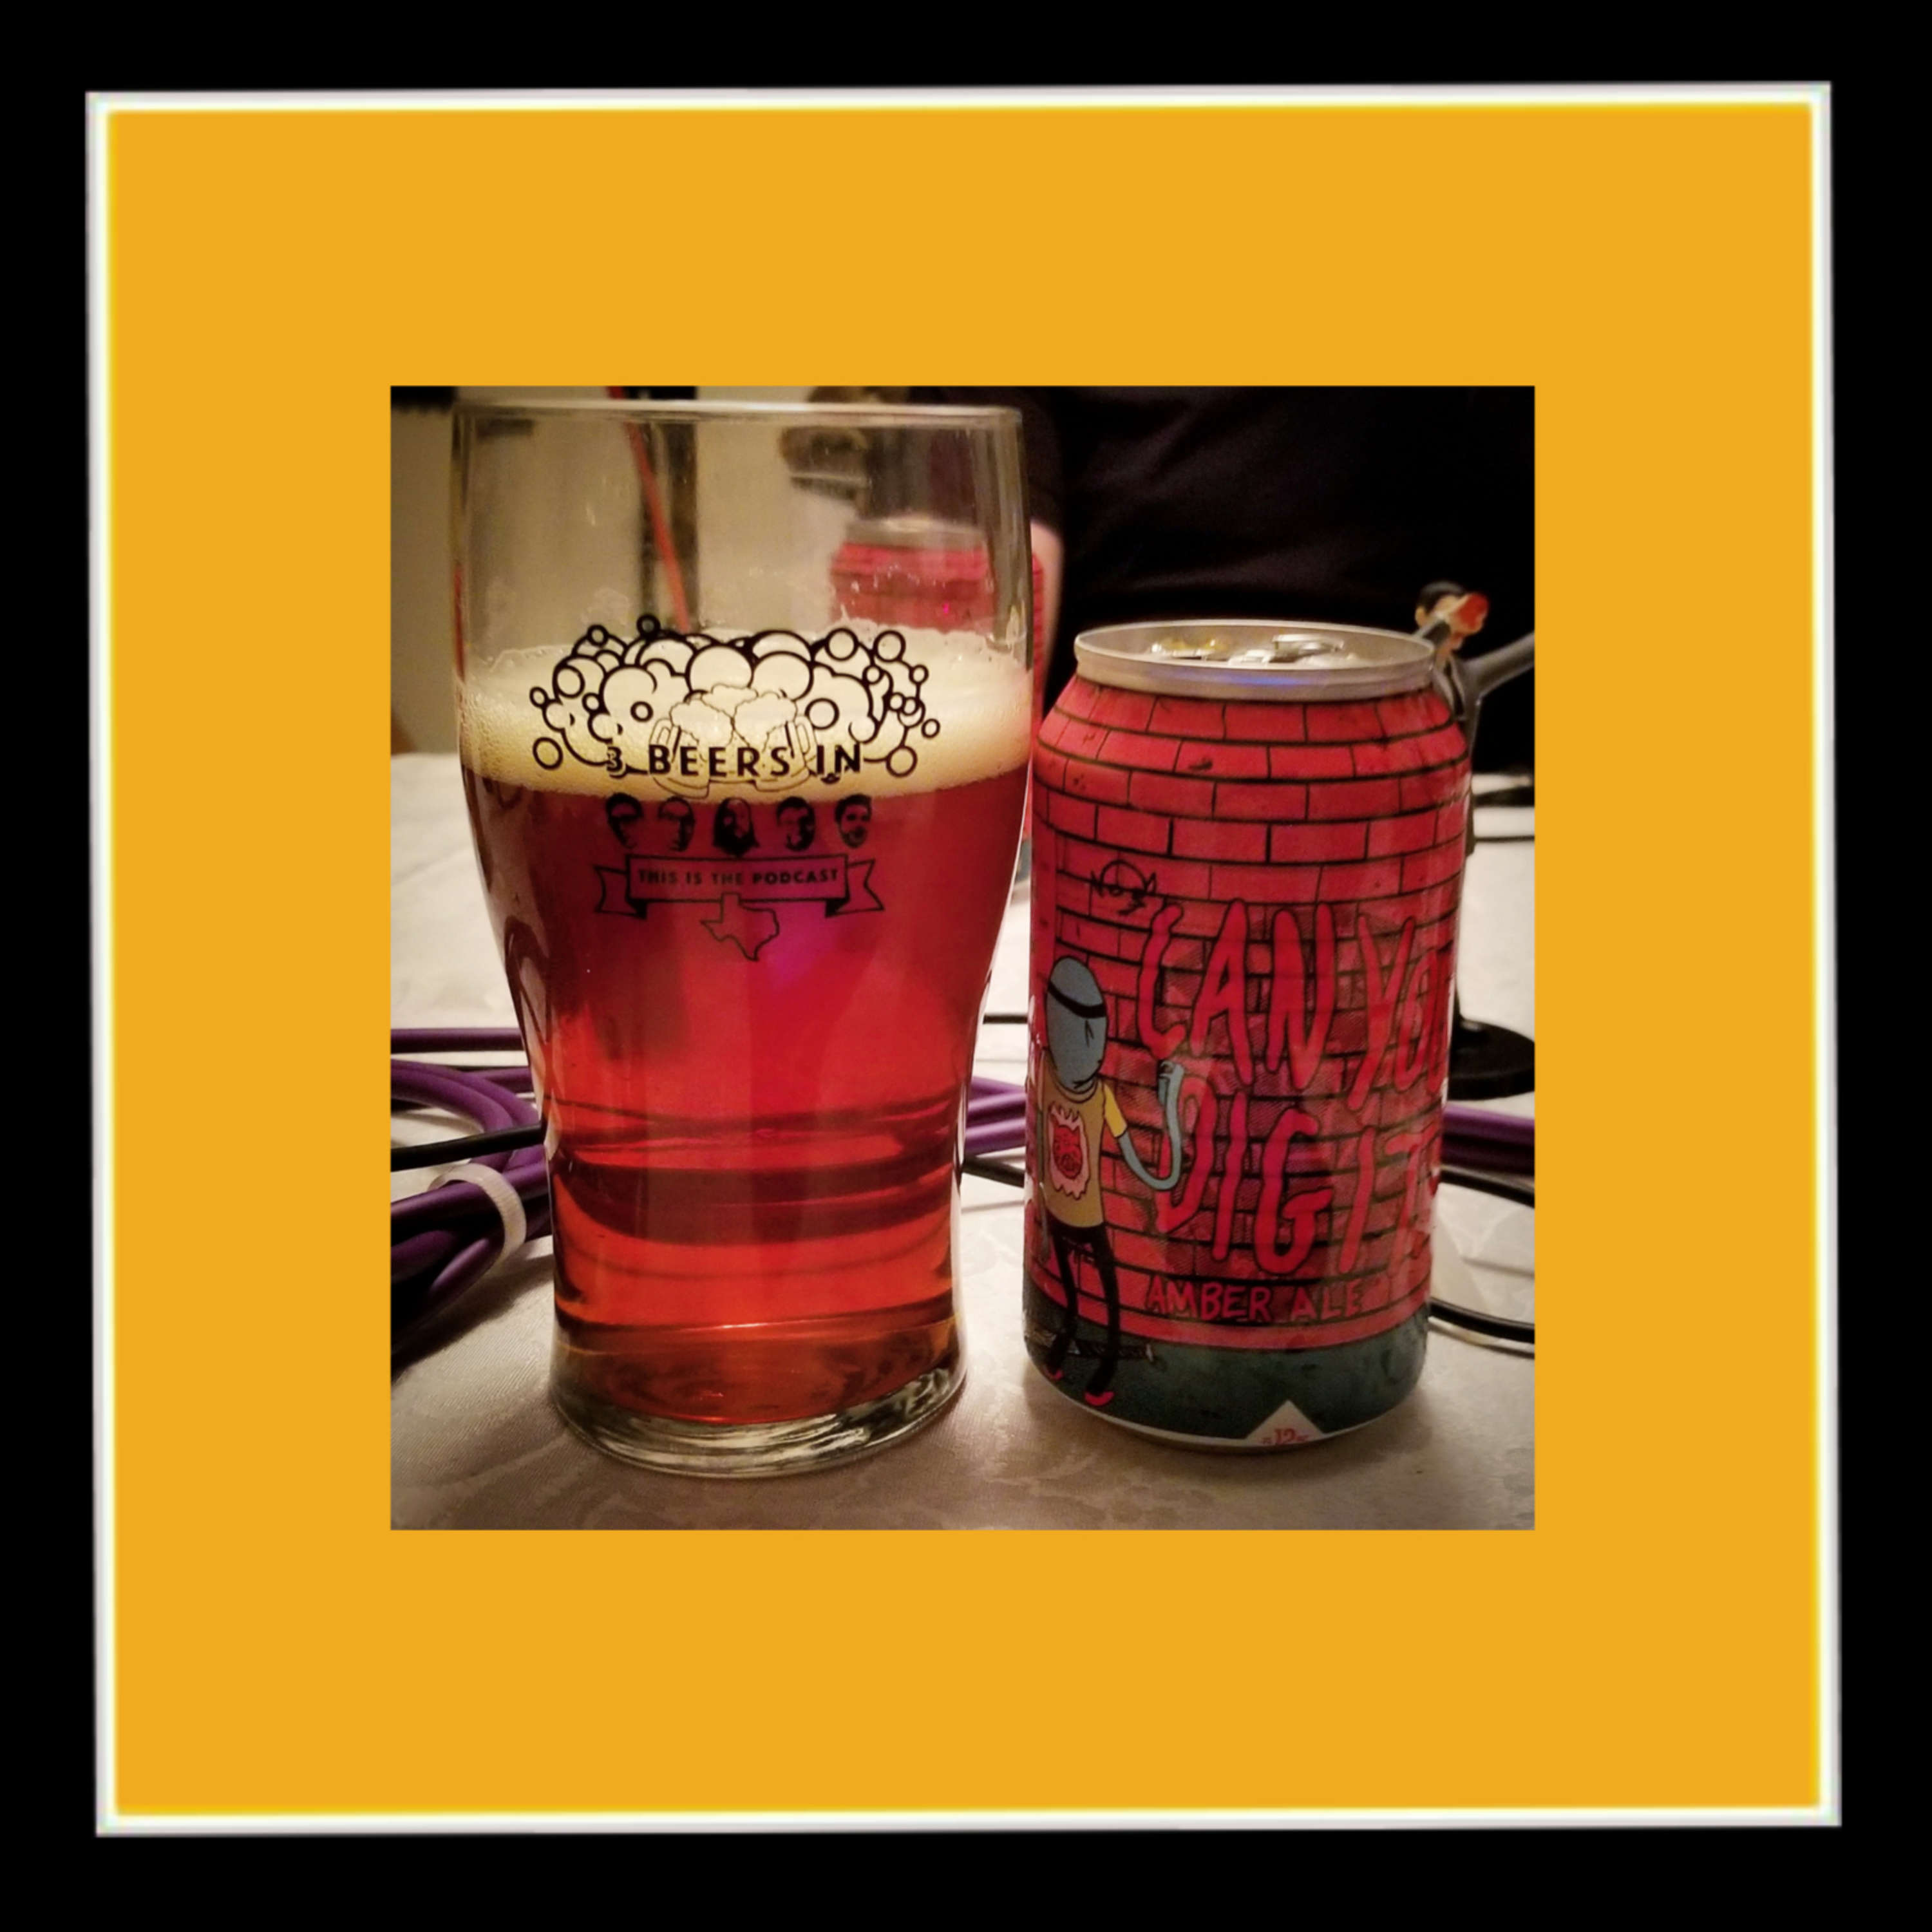 4th Tap Brewing Cooperative - Can You Dig It Amber Ale